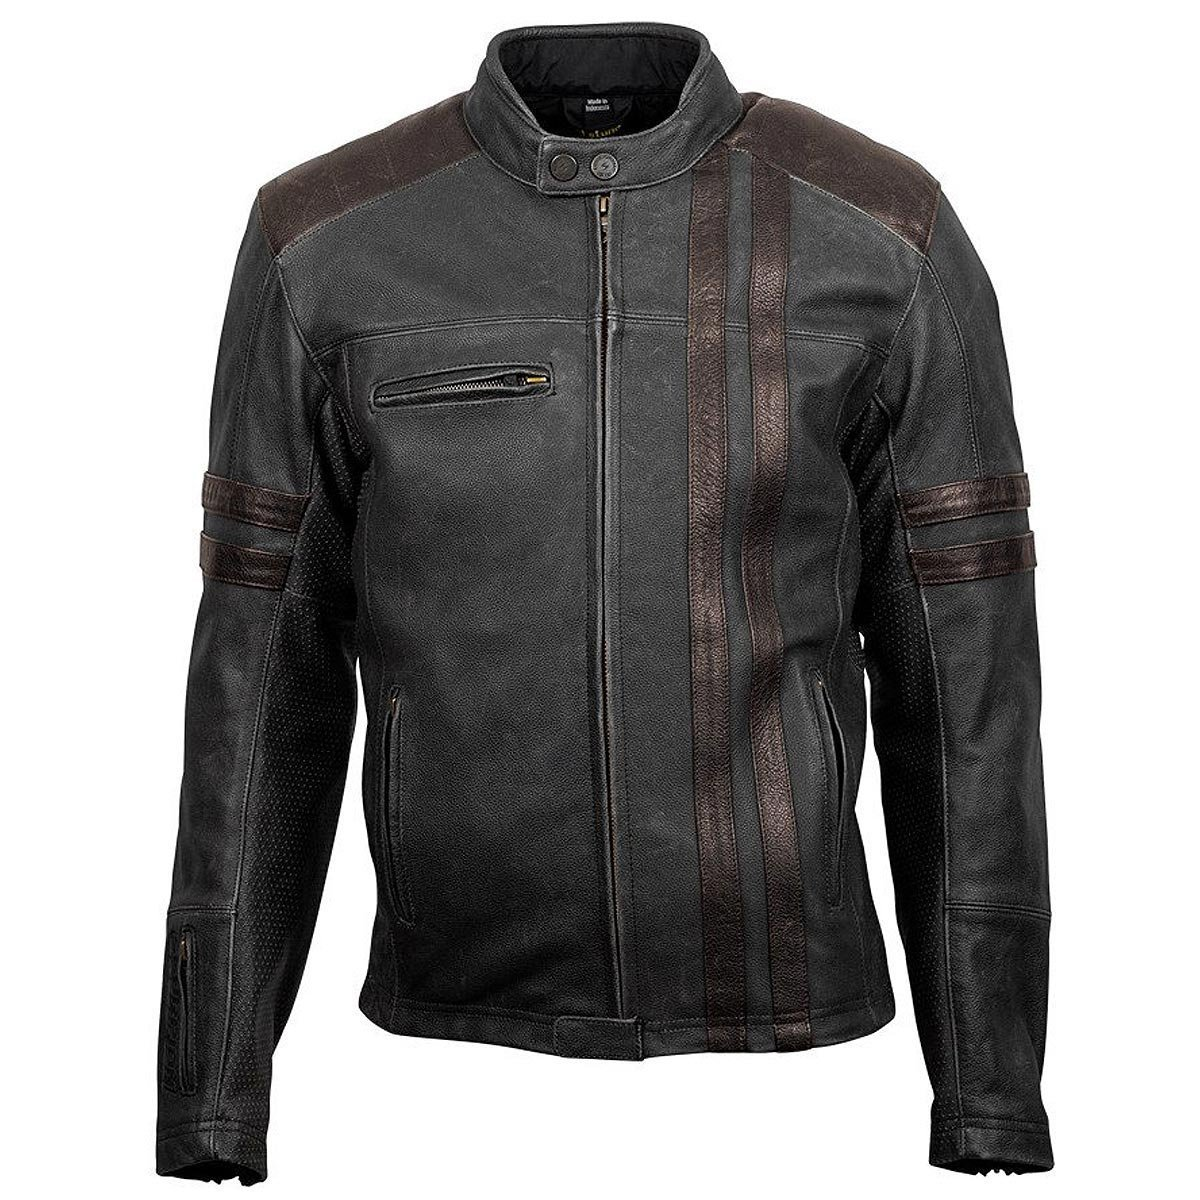 ScorpionExo 1909 Men's Leather Motorcycle Jacket (Brown, Large) 0